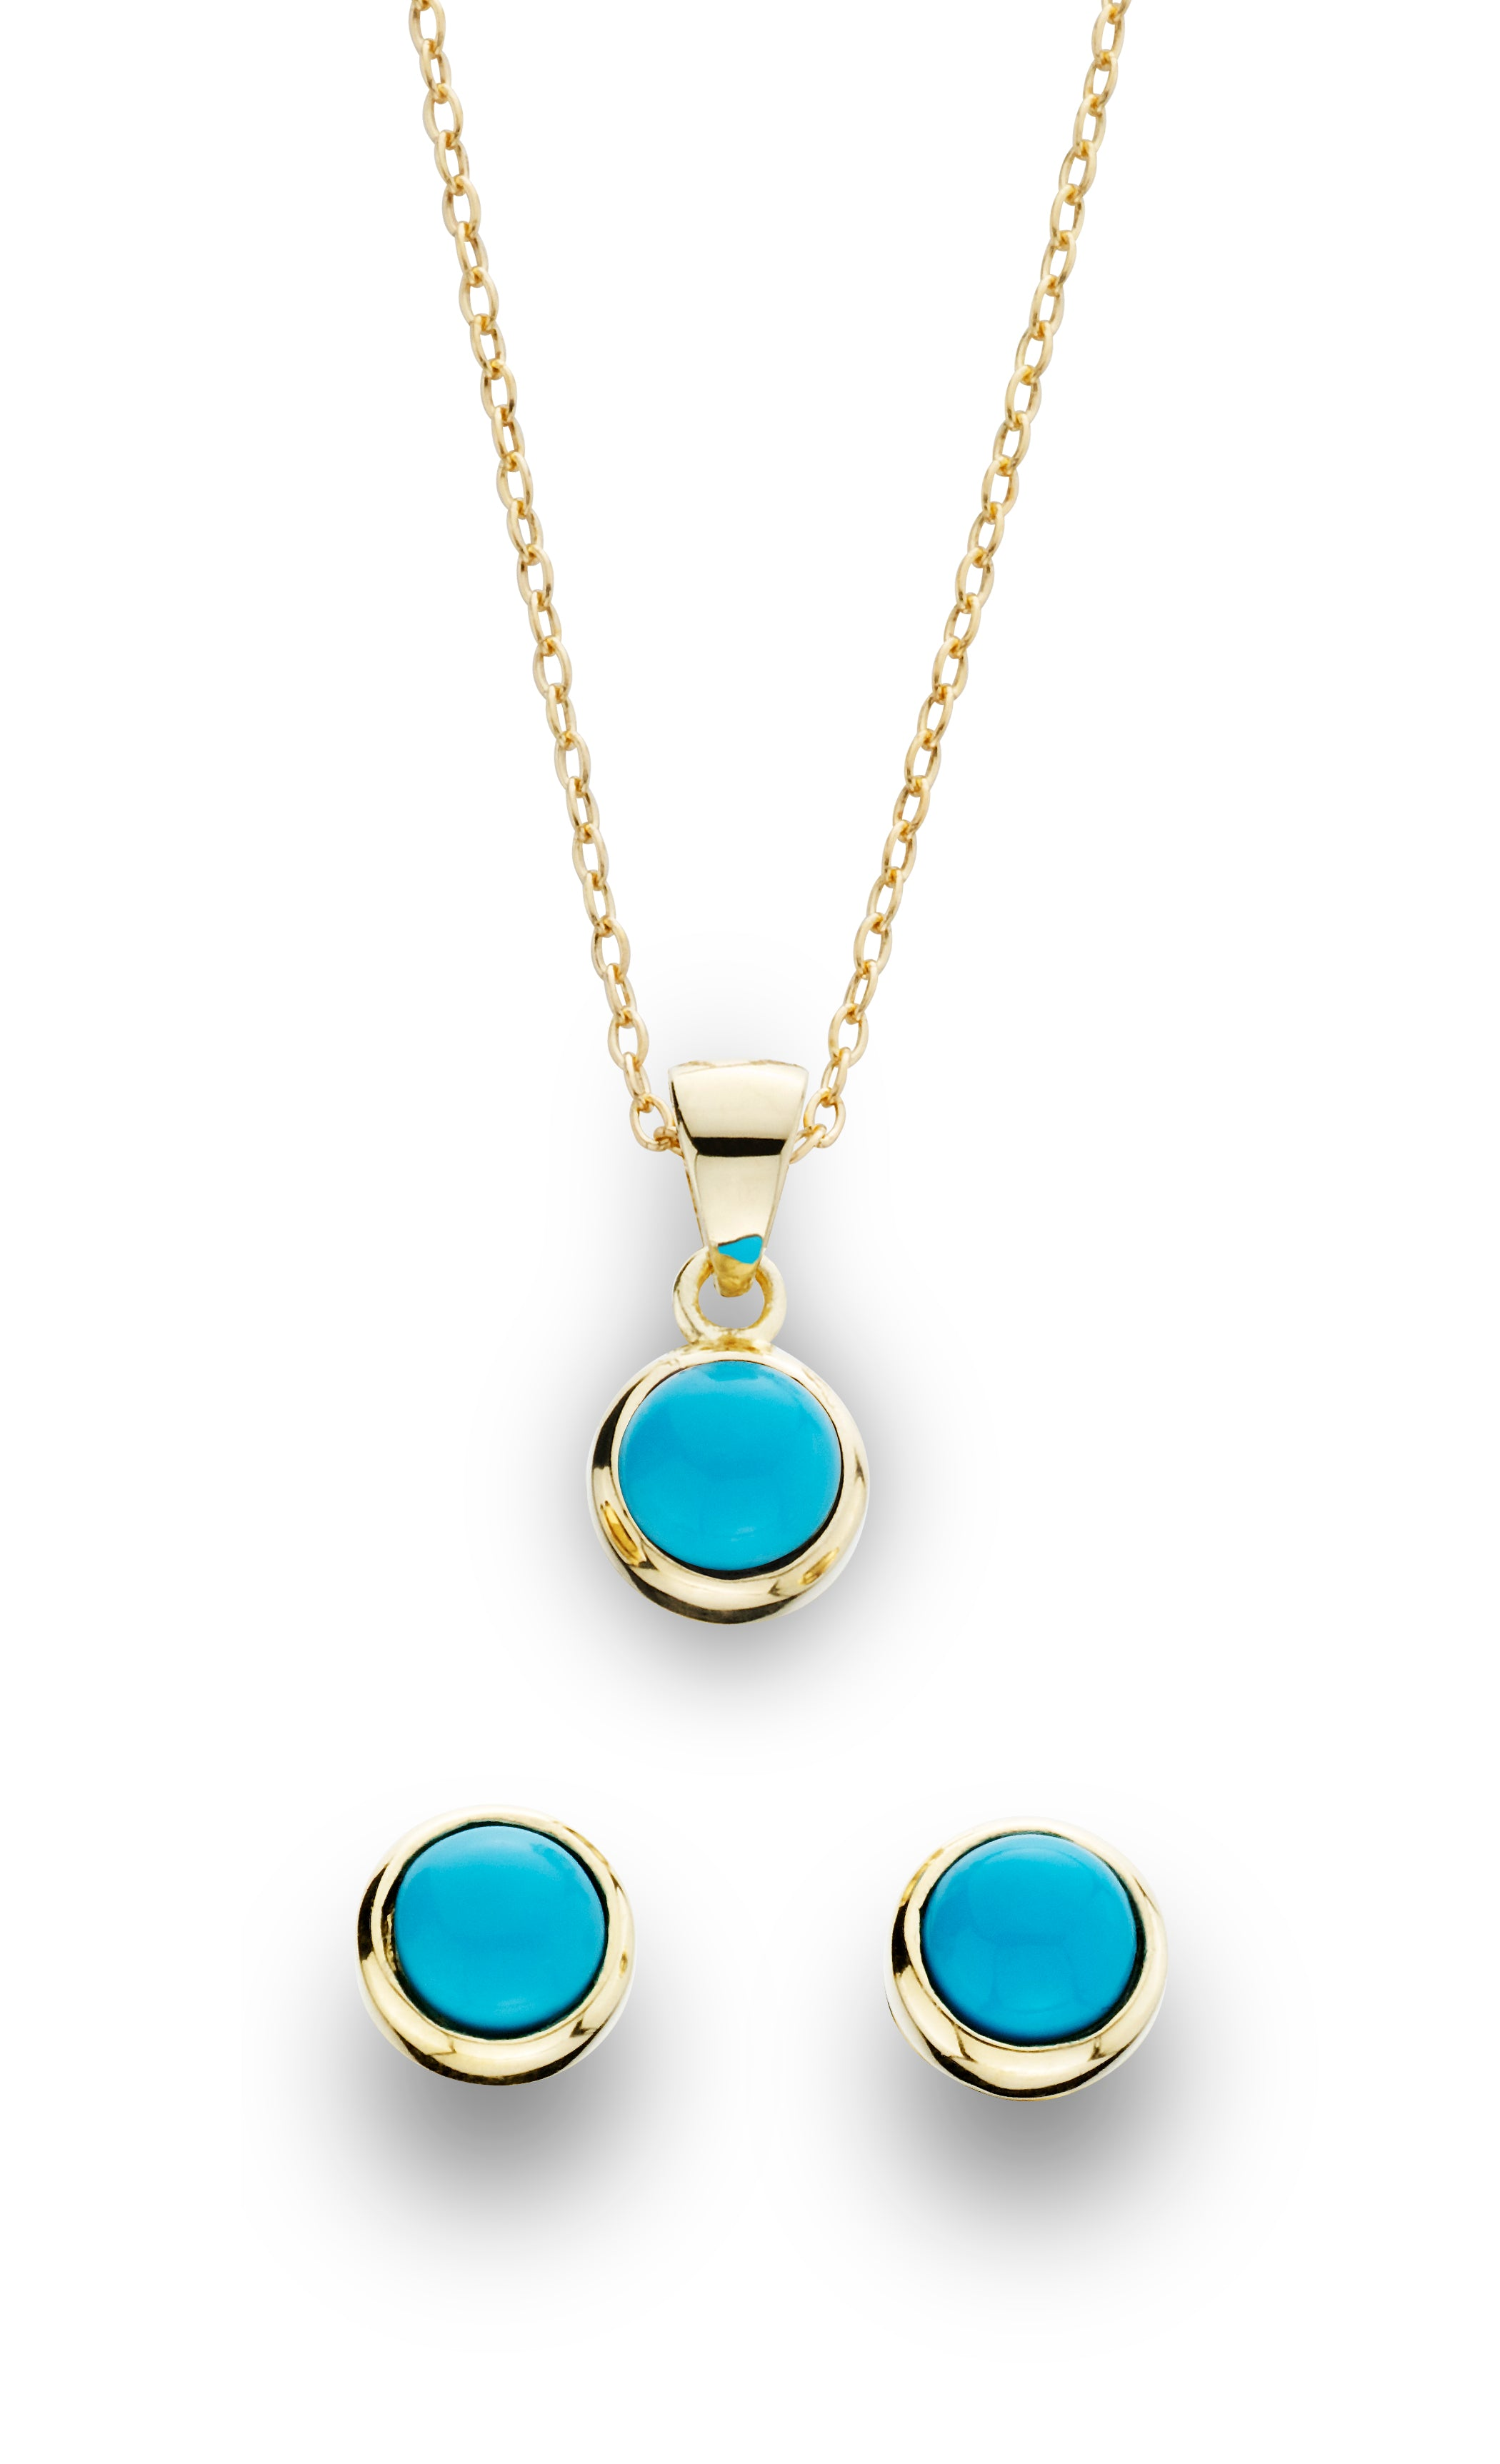 2 Piece Turquoise Earring and Pendant Set